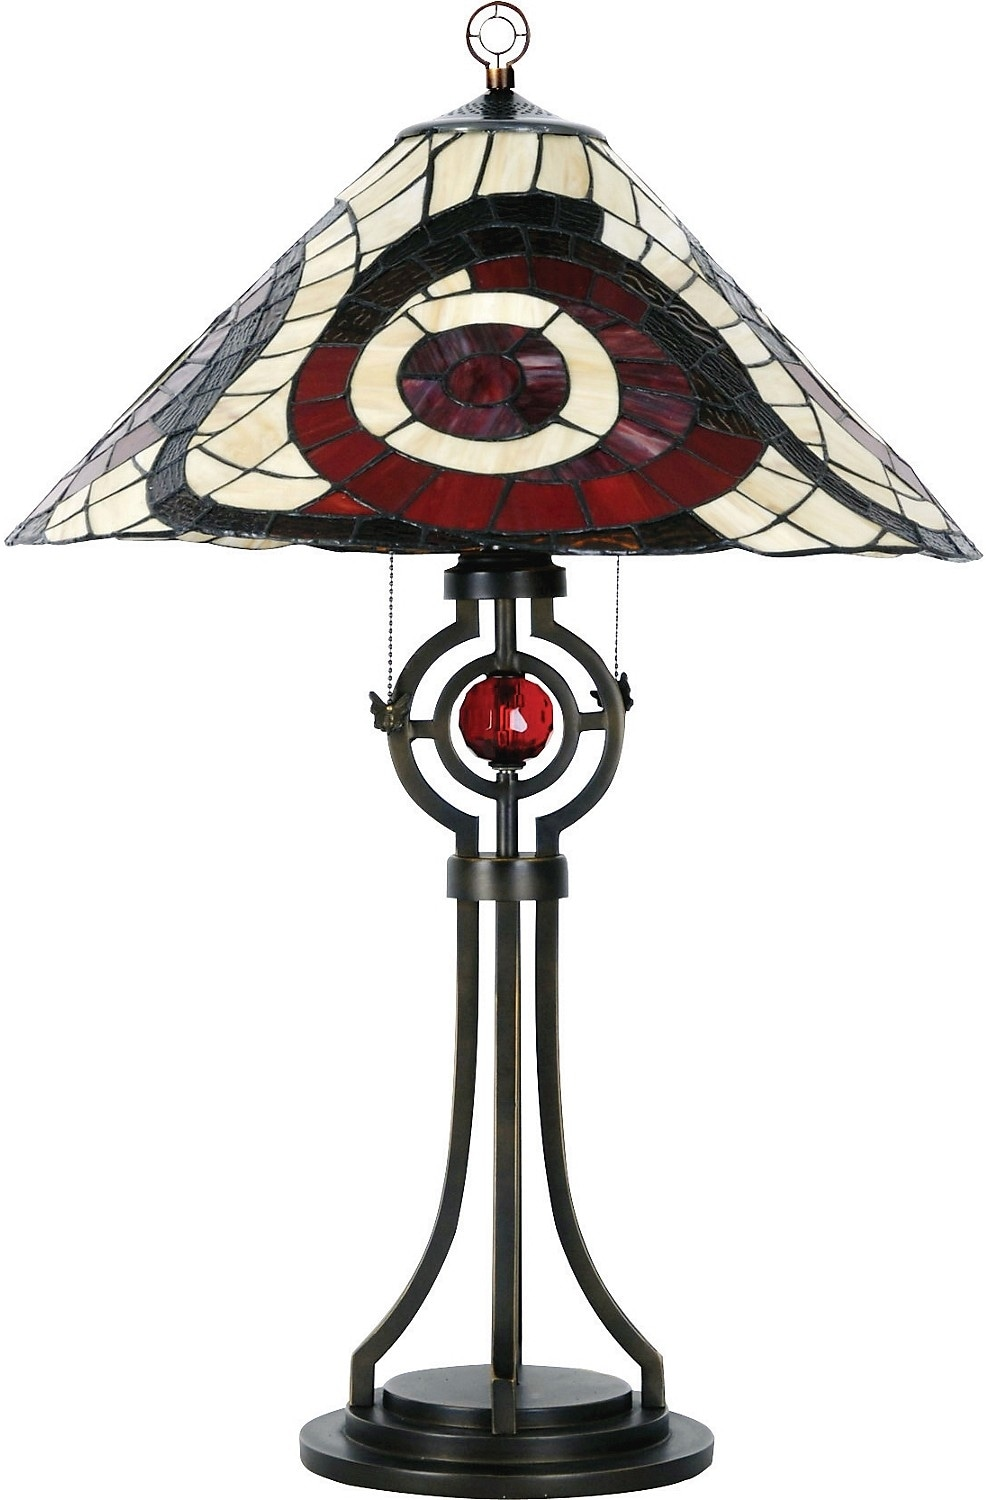 Home Accessories - Cosmopolitan Table Lamp with Stained Glass Shade